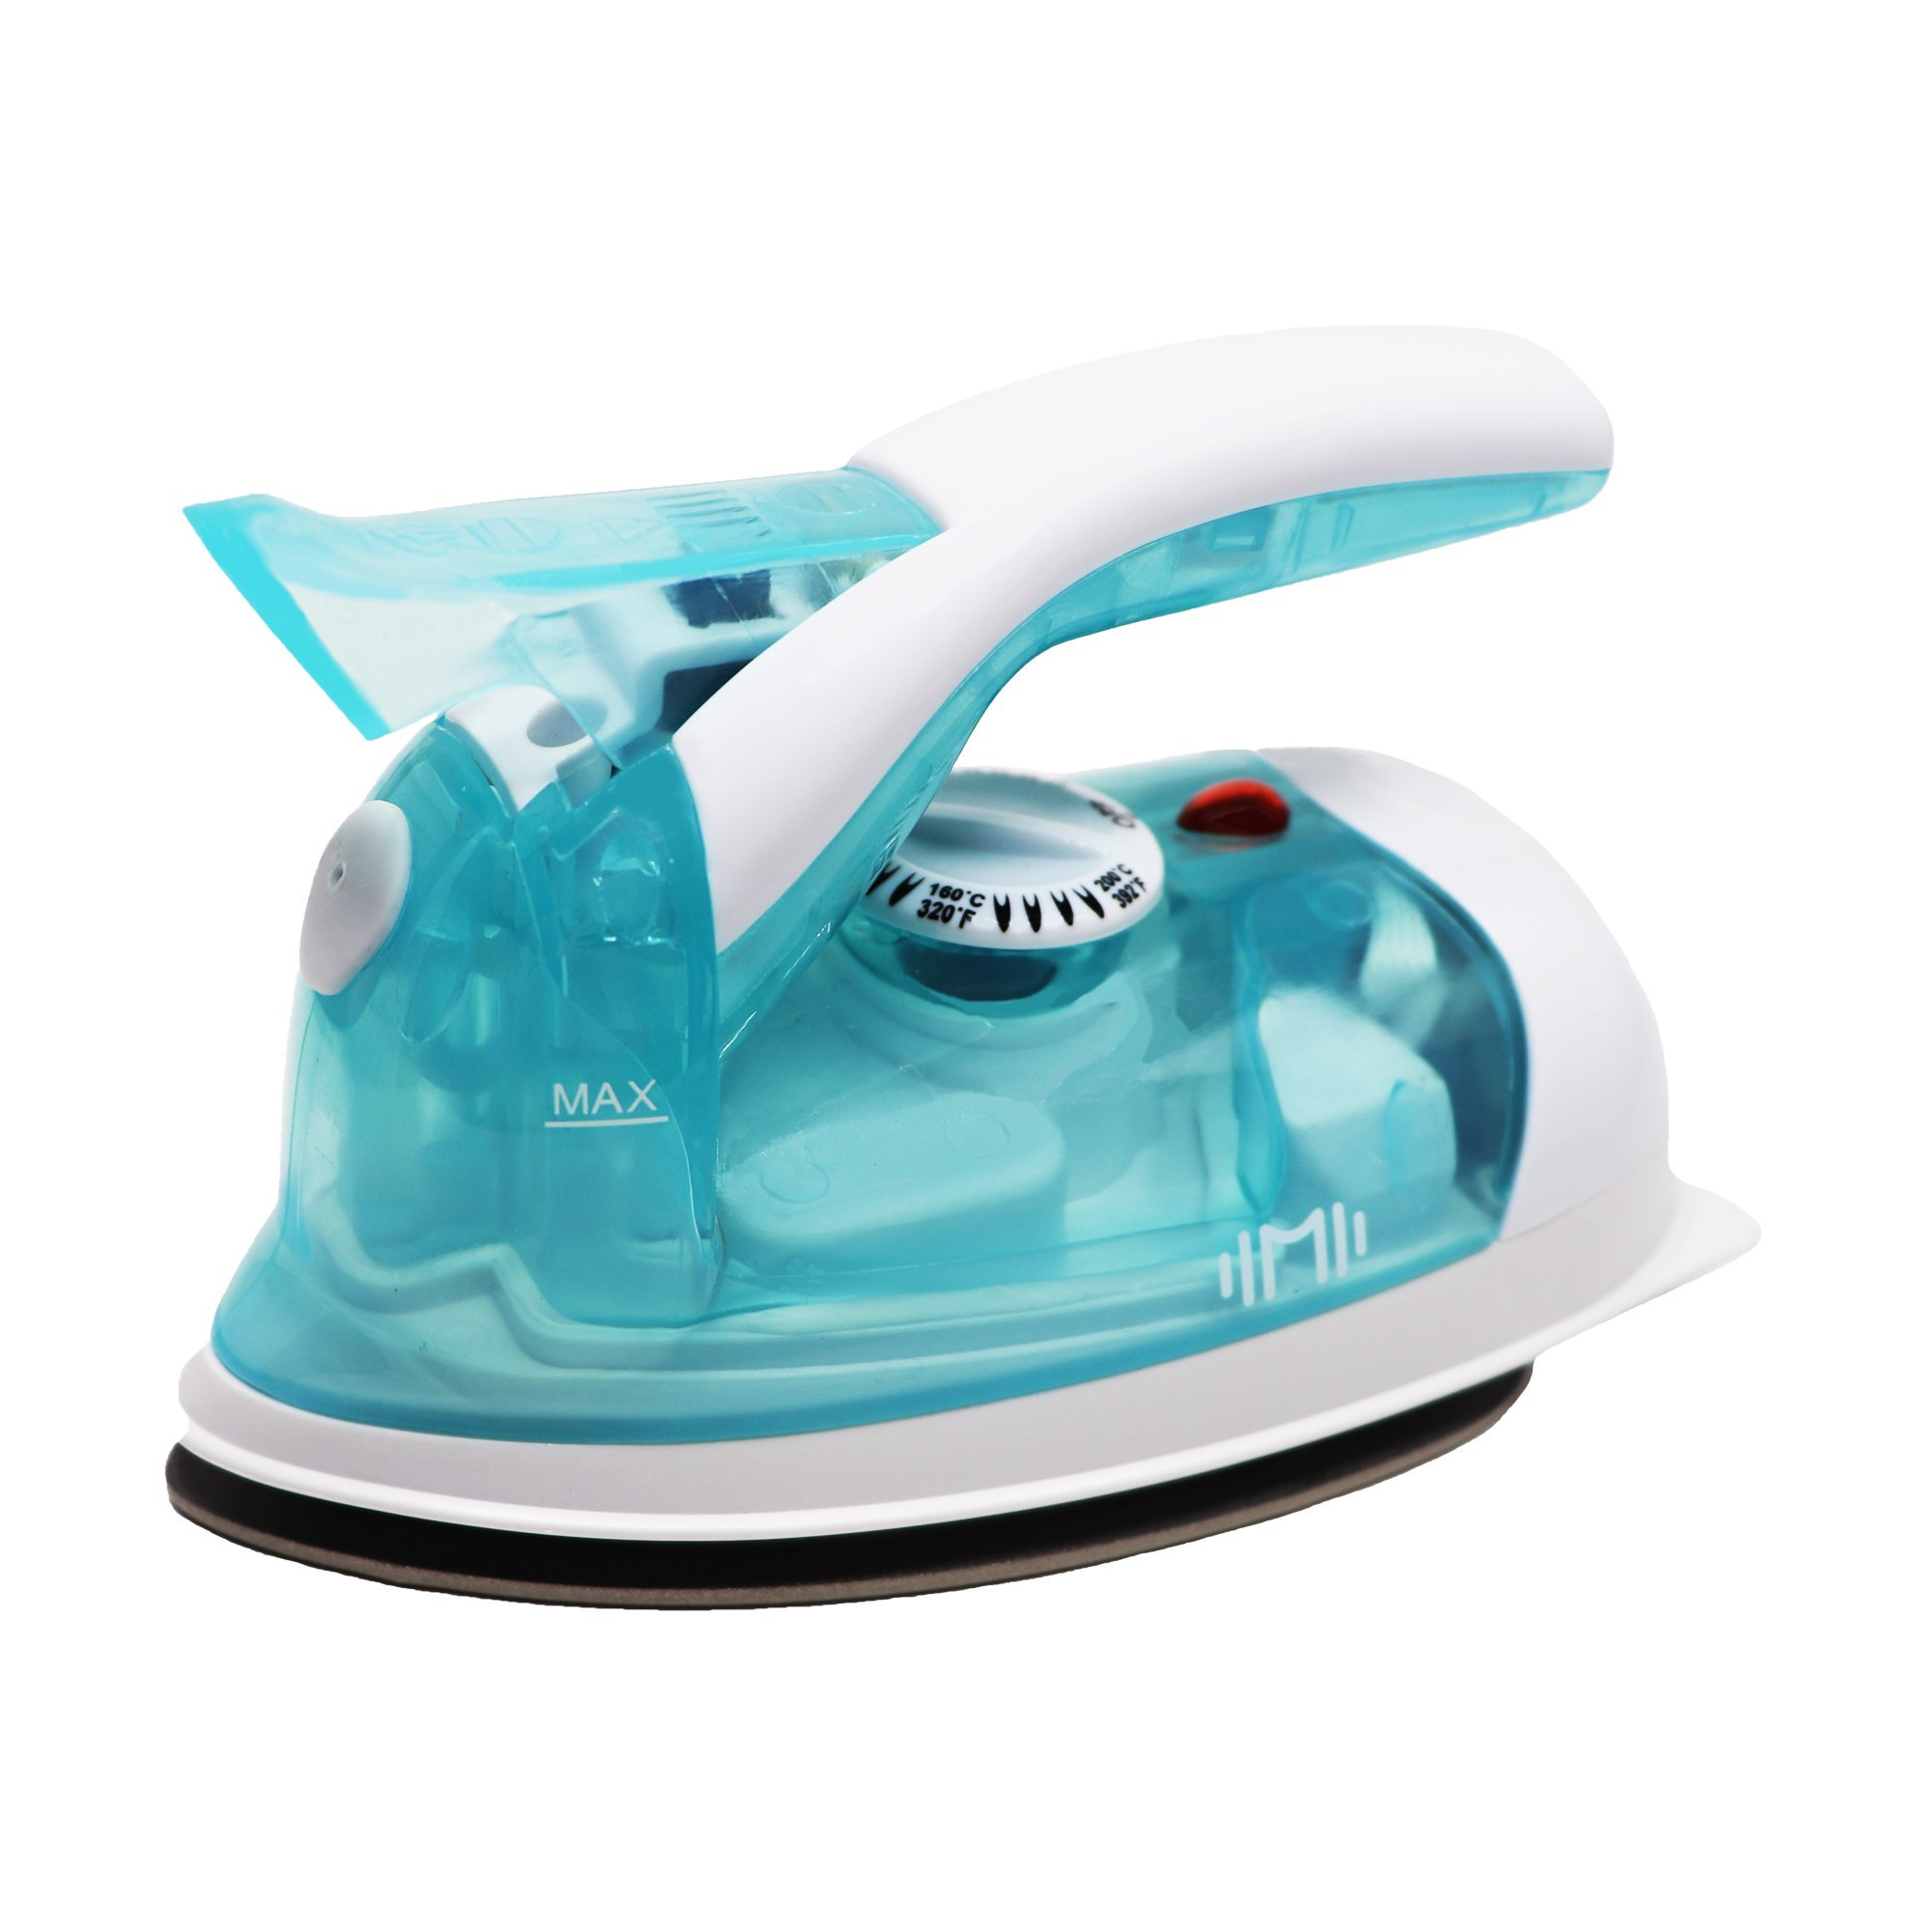 IIMII Mini Travel Steam Iron, Dual Voltage 560W Power, Rapid Heating, Powerful Steam, Non-Stick Soleplate and Compact Design, Best for Home and Travel